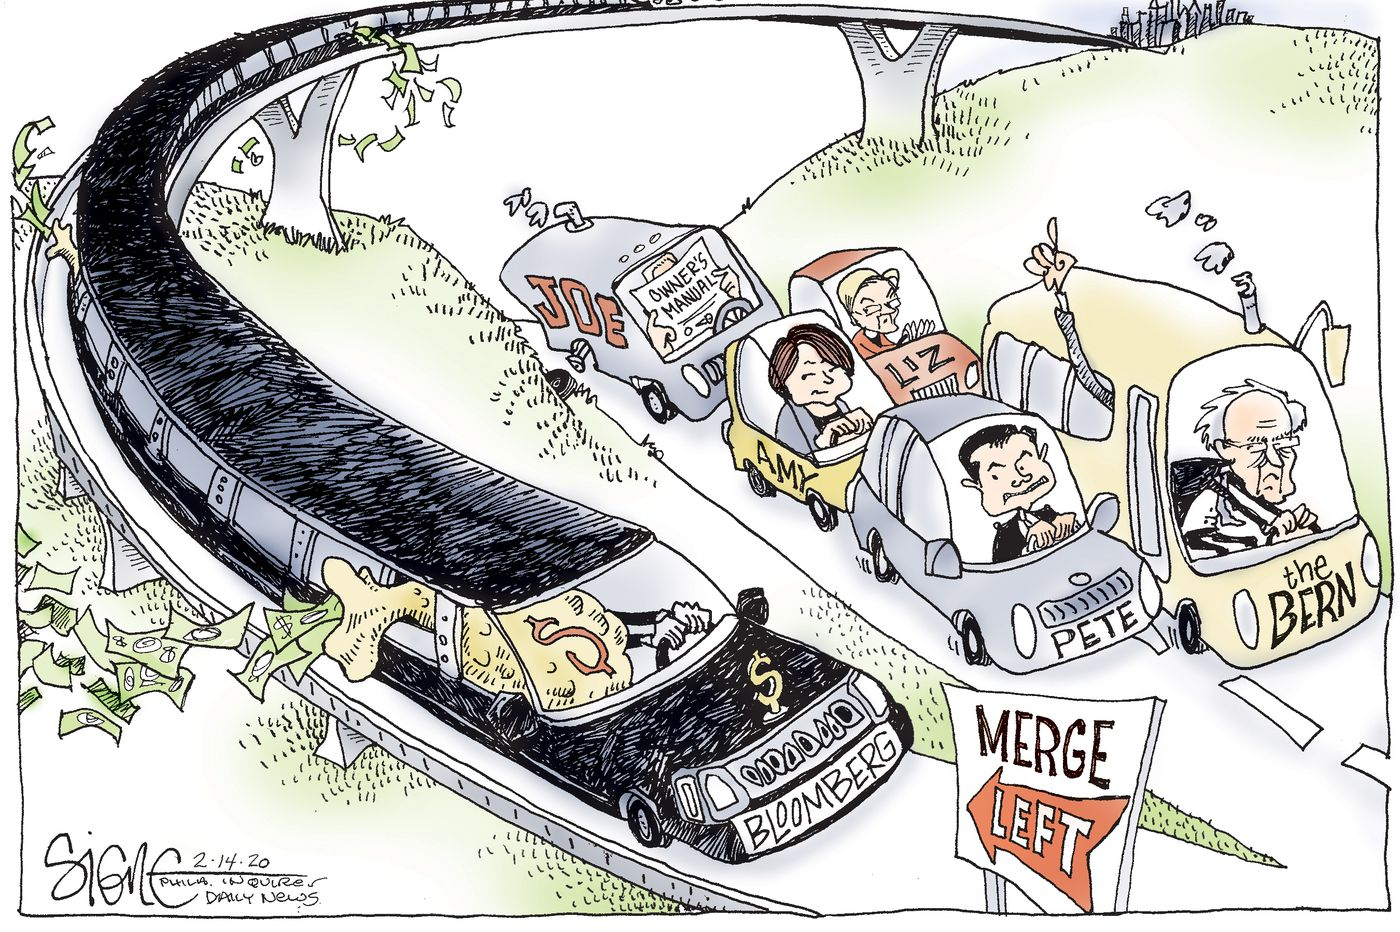 Political Cartoon: Bloomberg merges left